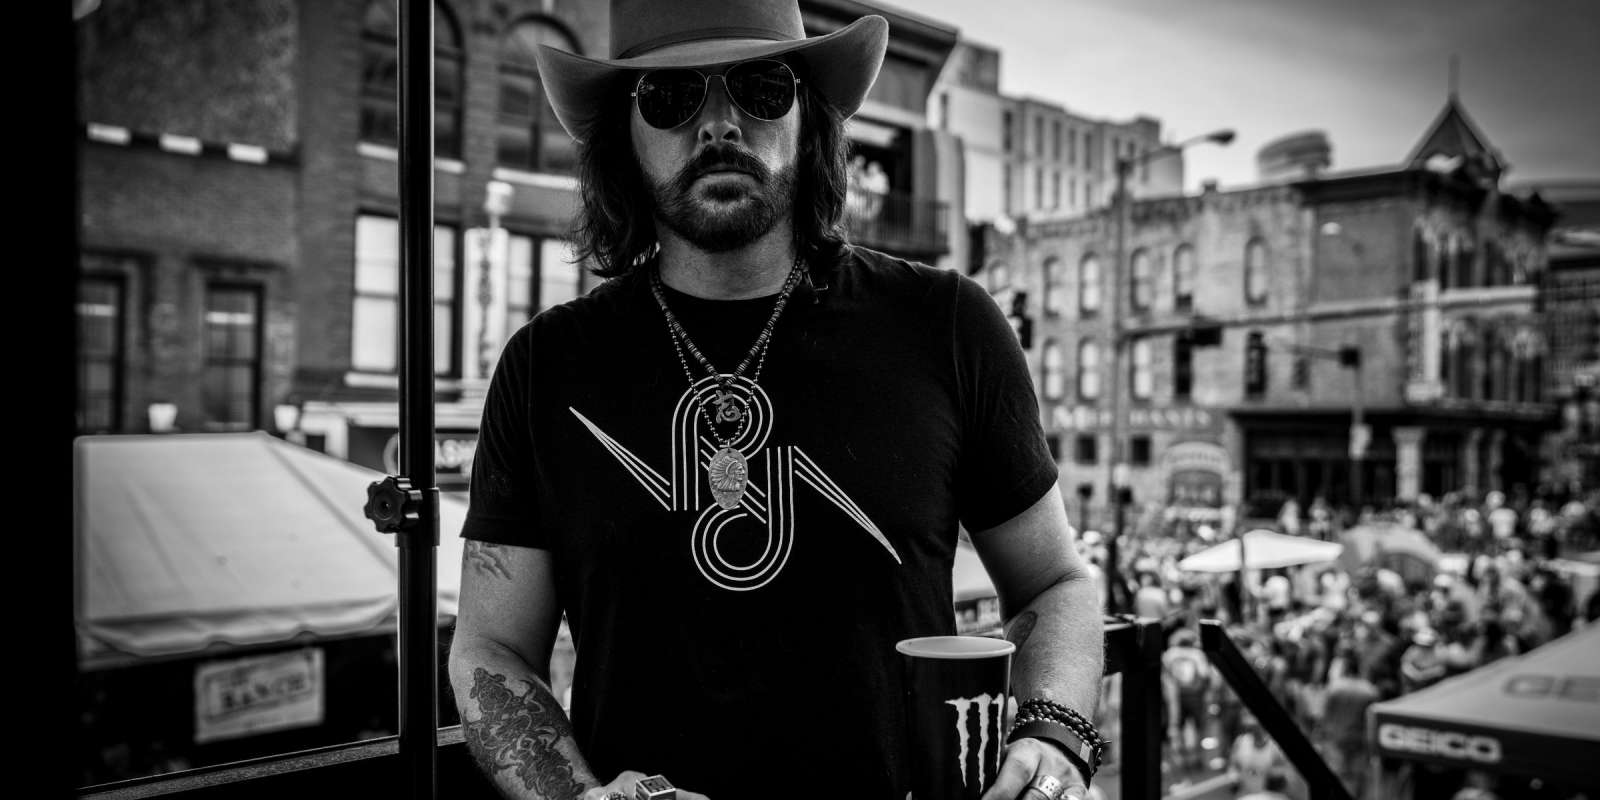 Images from the 2018 CMA Fest in Nashville, Tennessee